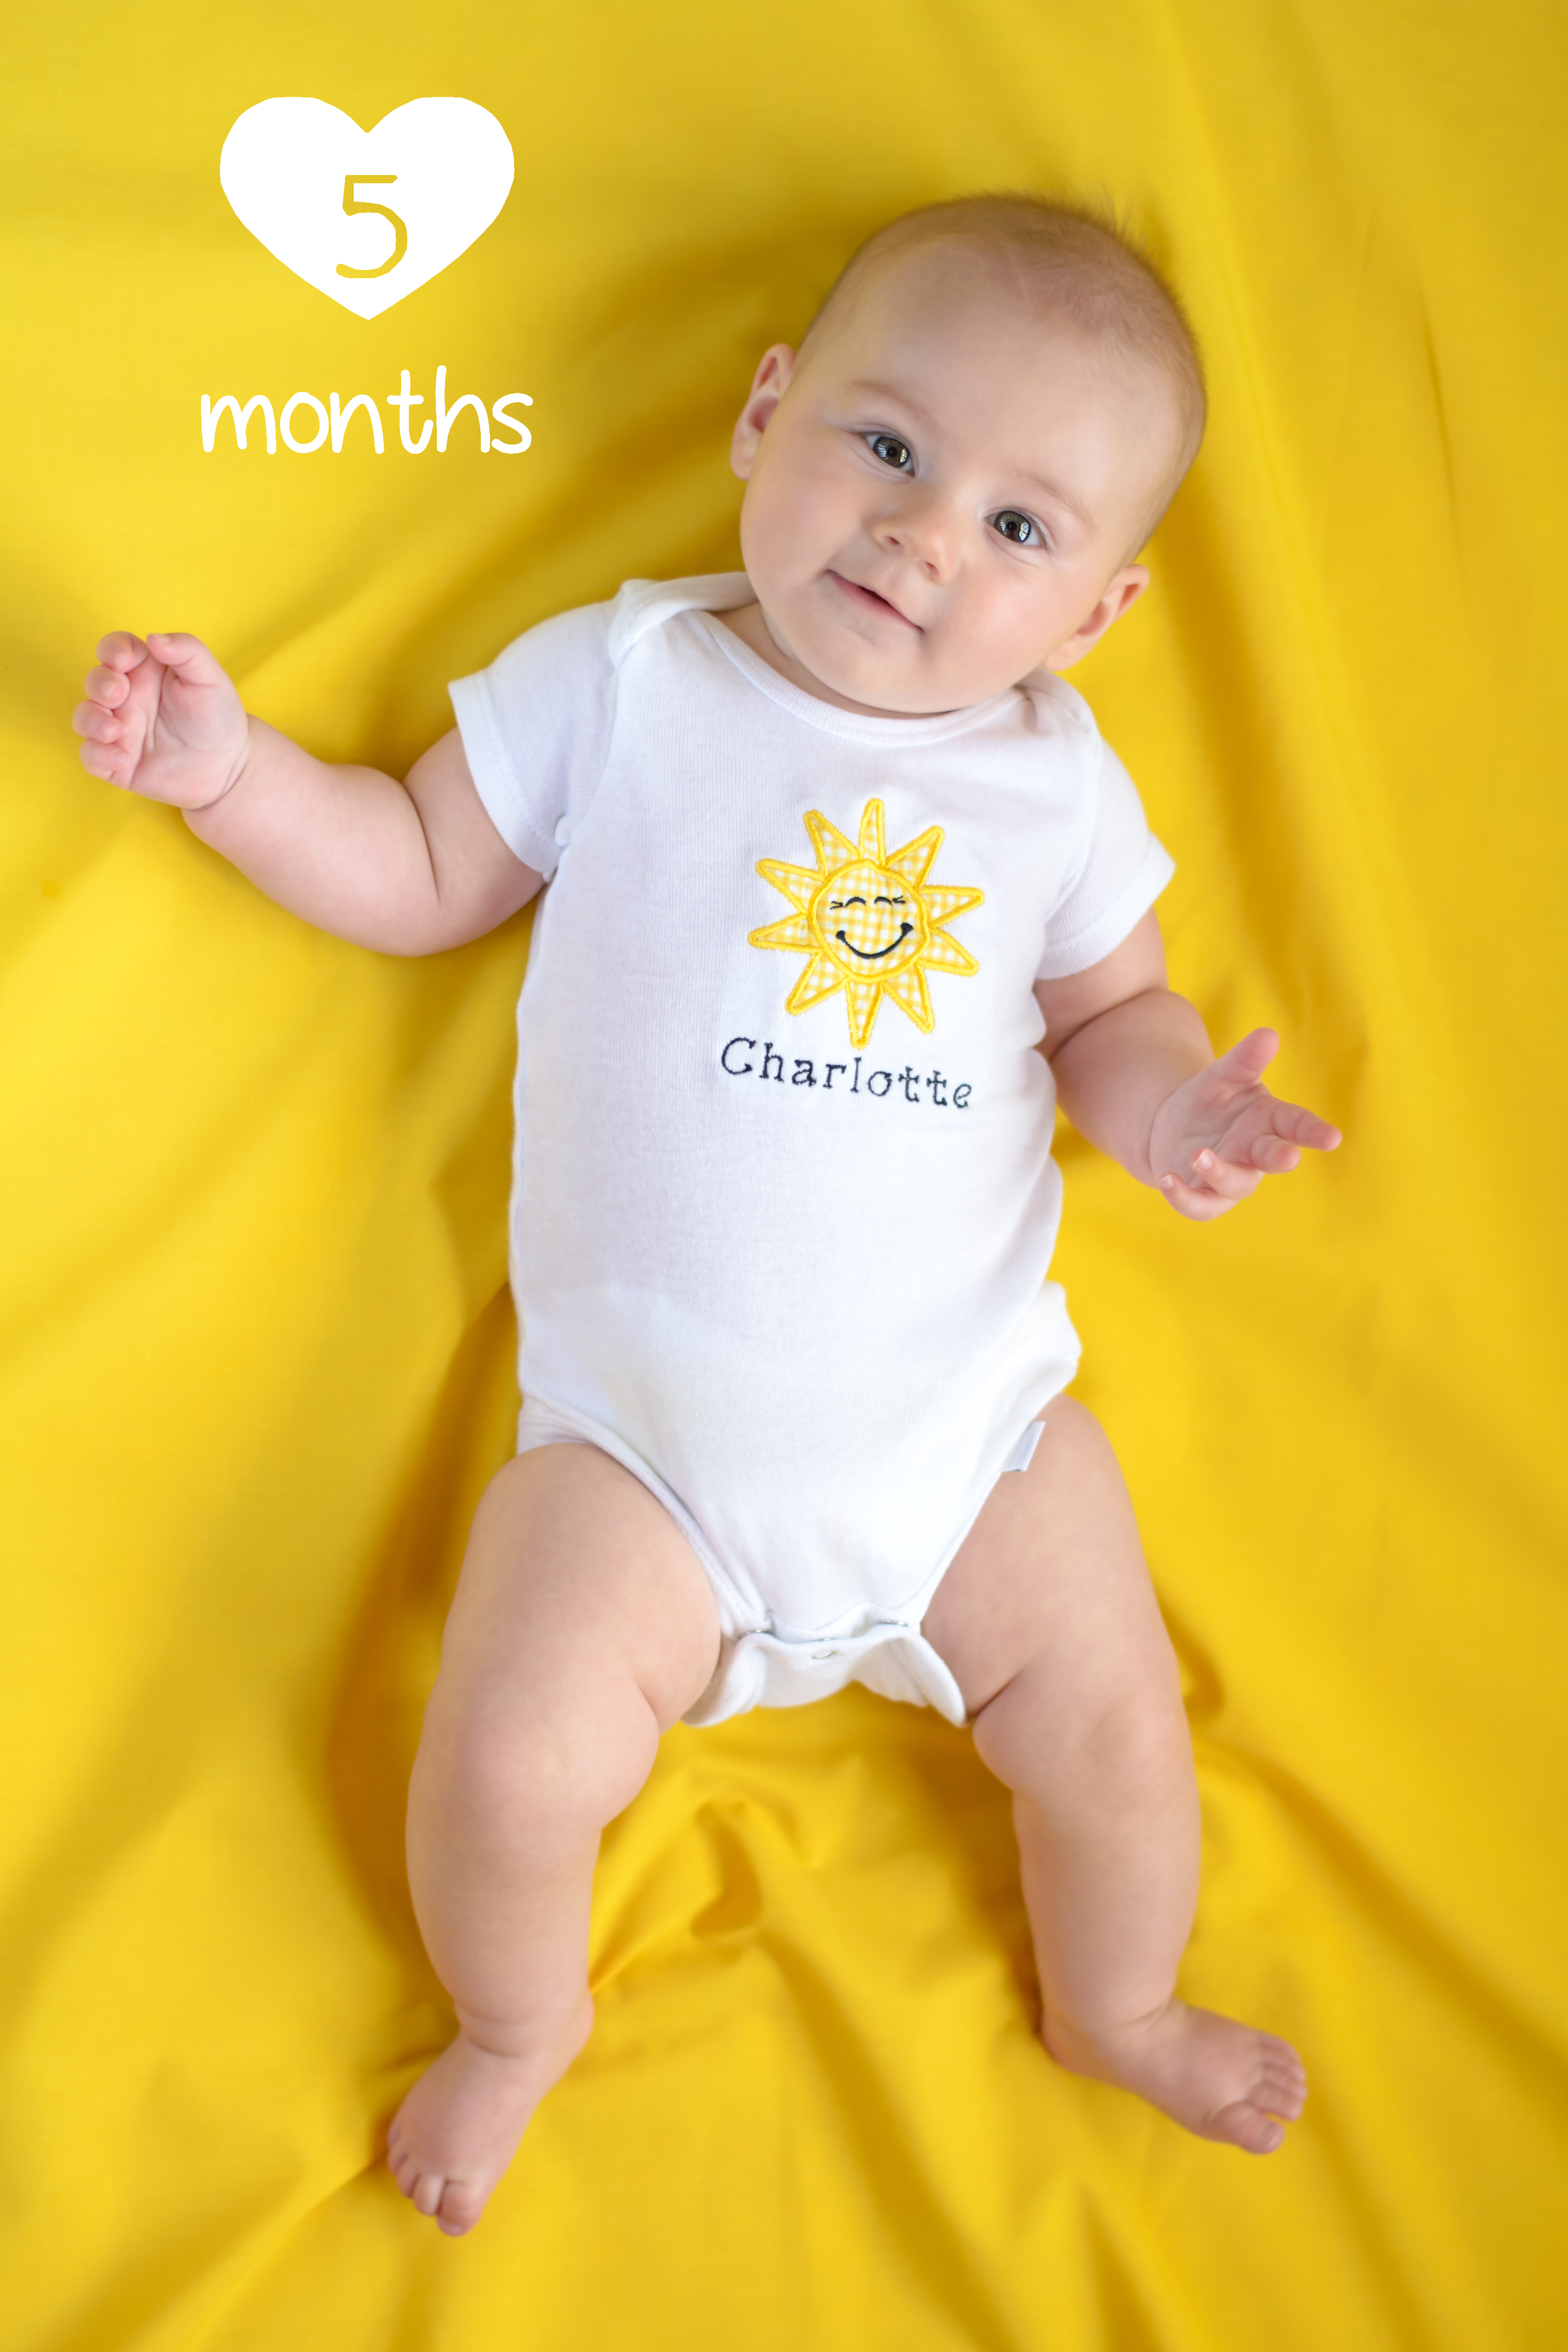 Charlotte S Time Capsule 5 Months Our Sunshine Angel